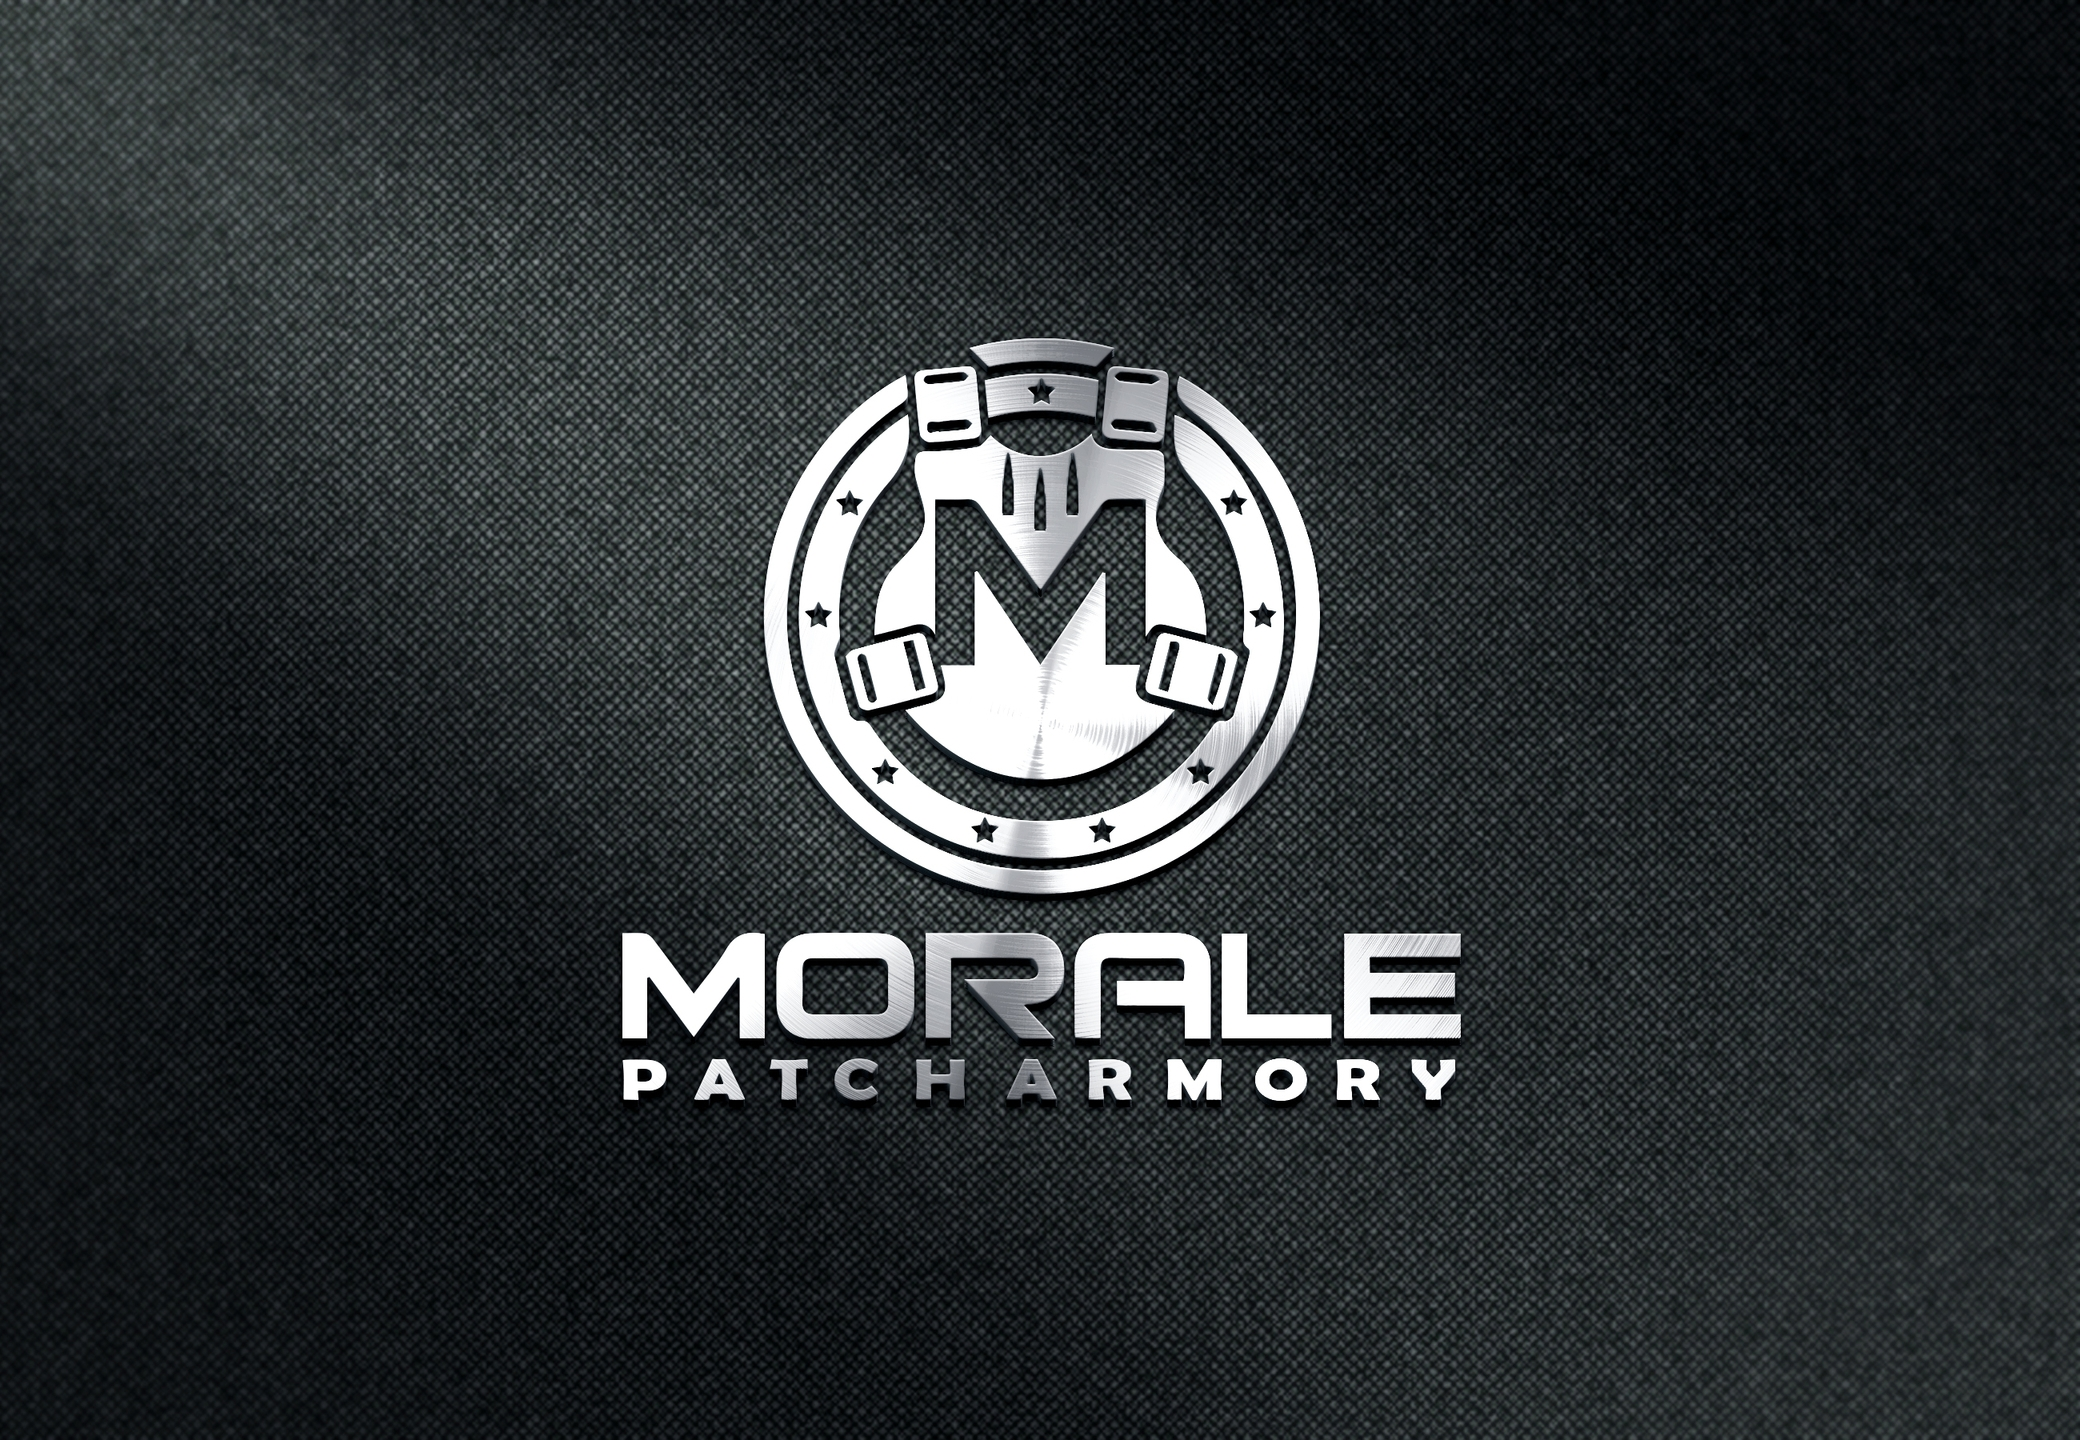 Morale Patch Armory (@moralepatcharmory) Cover Image